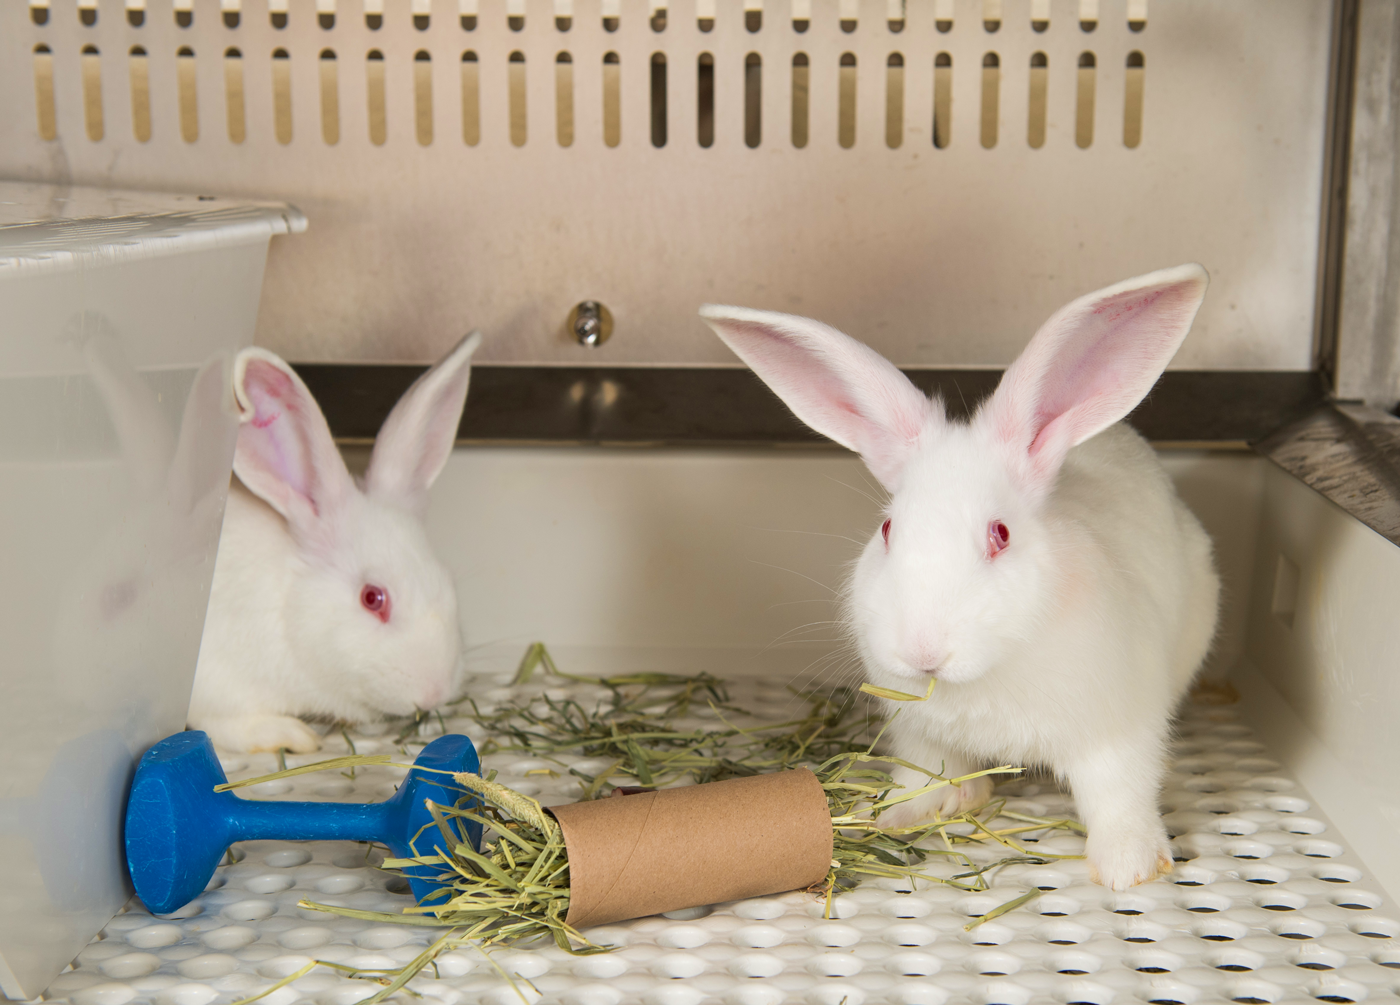 Pair housed rabbits with enrichment